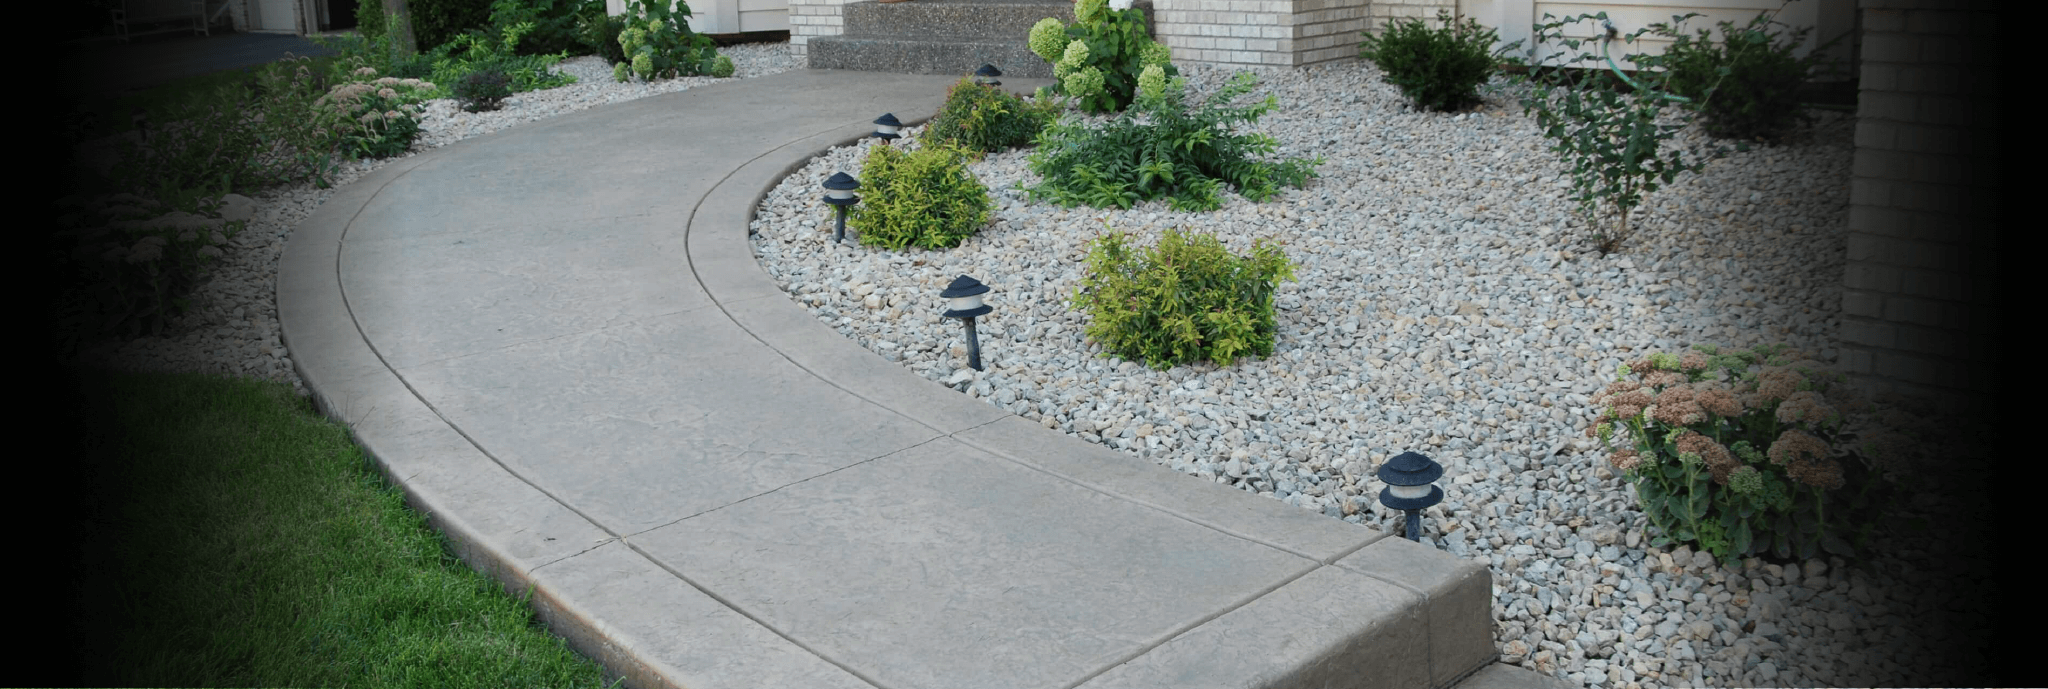 Standard Stamped Concrete Walkway Lakeville MN